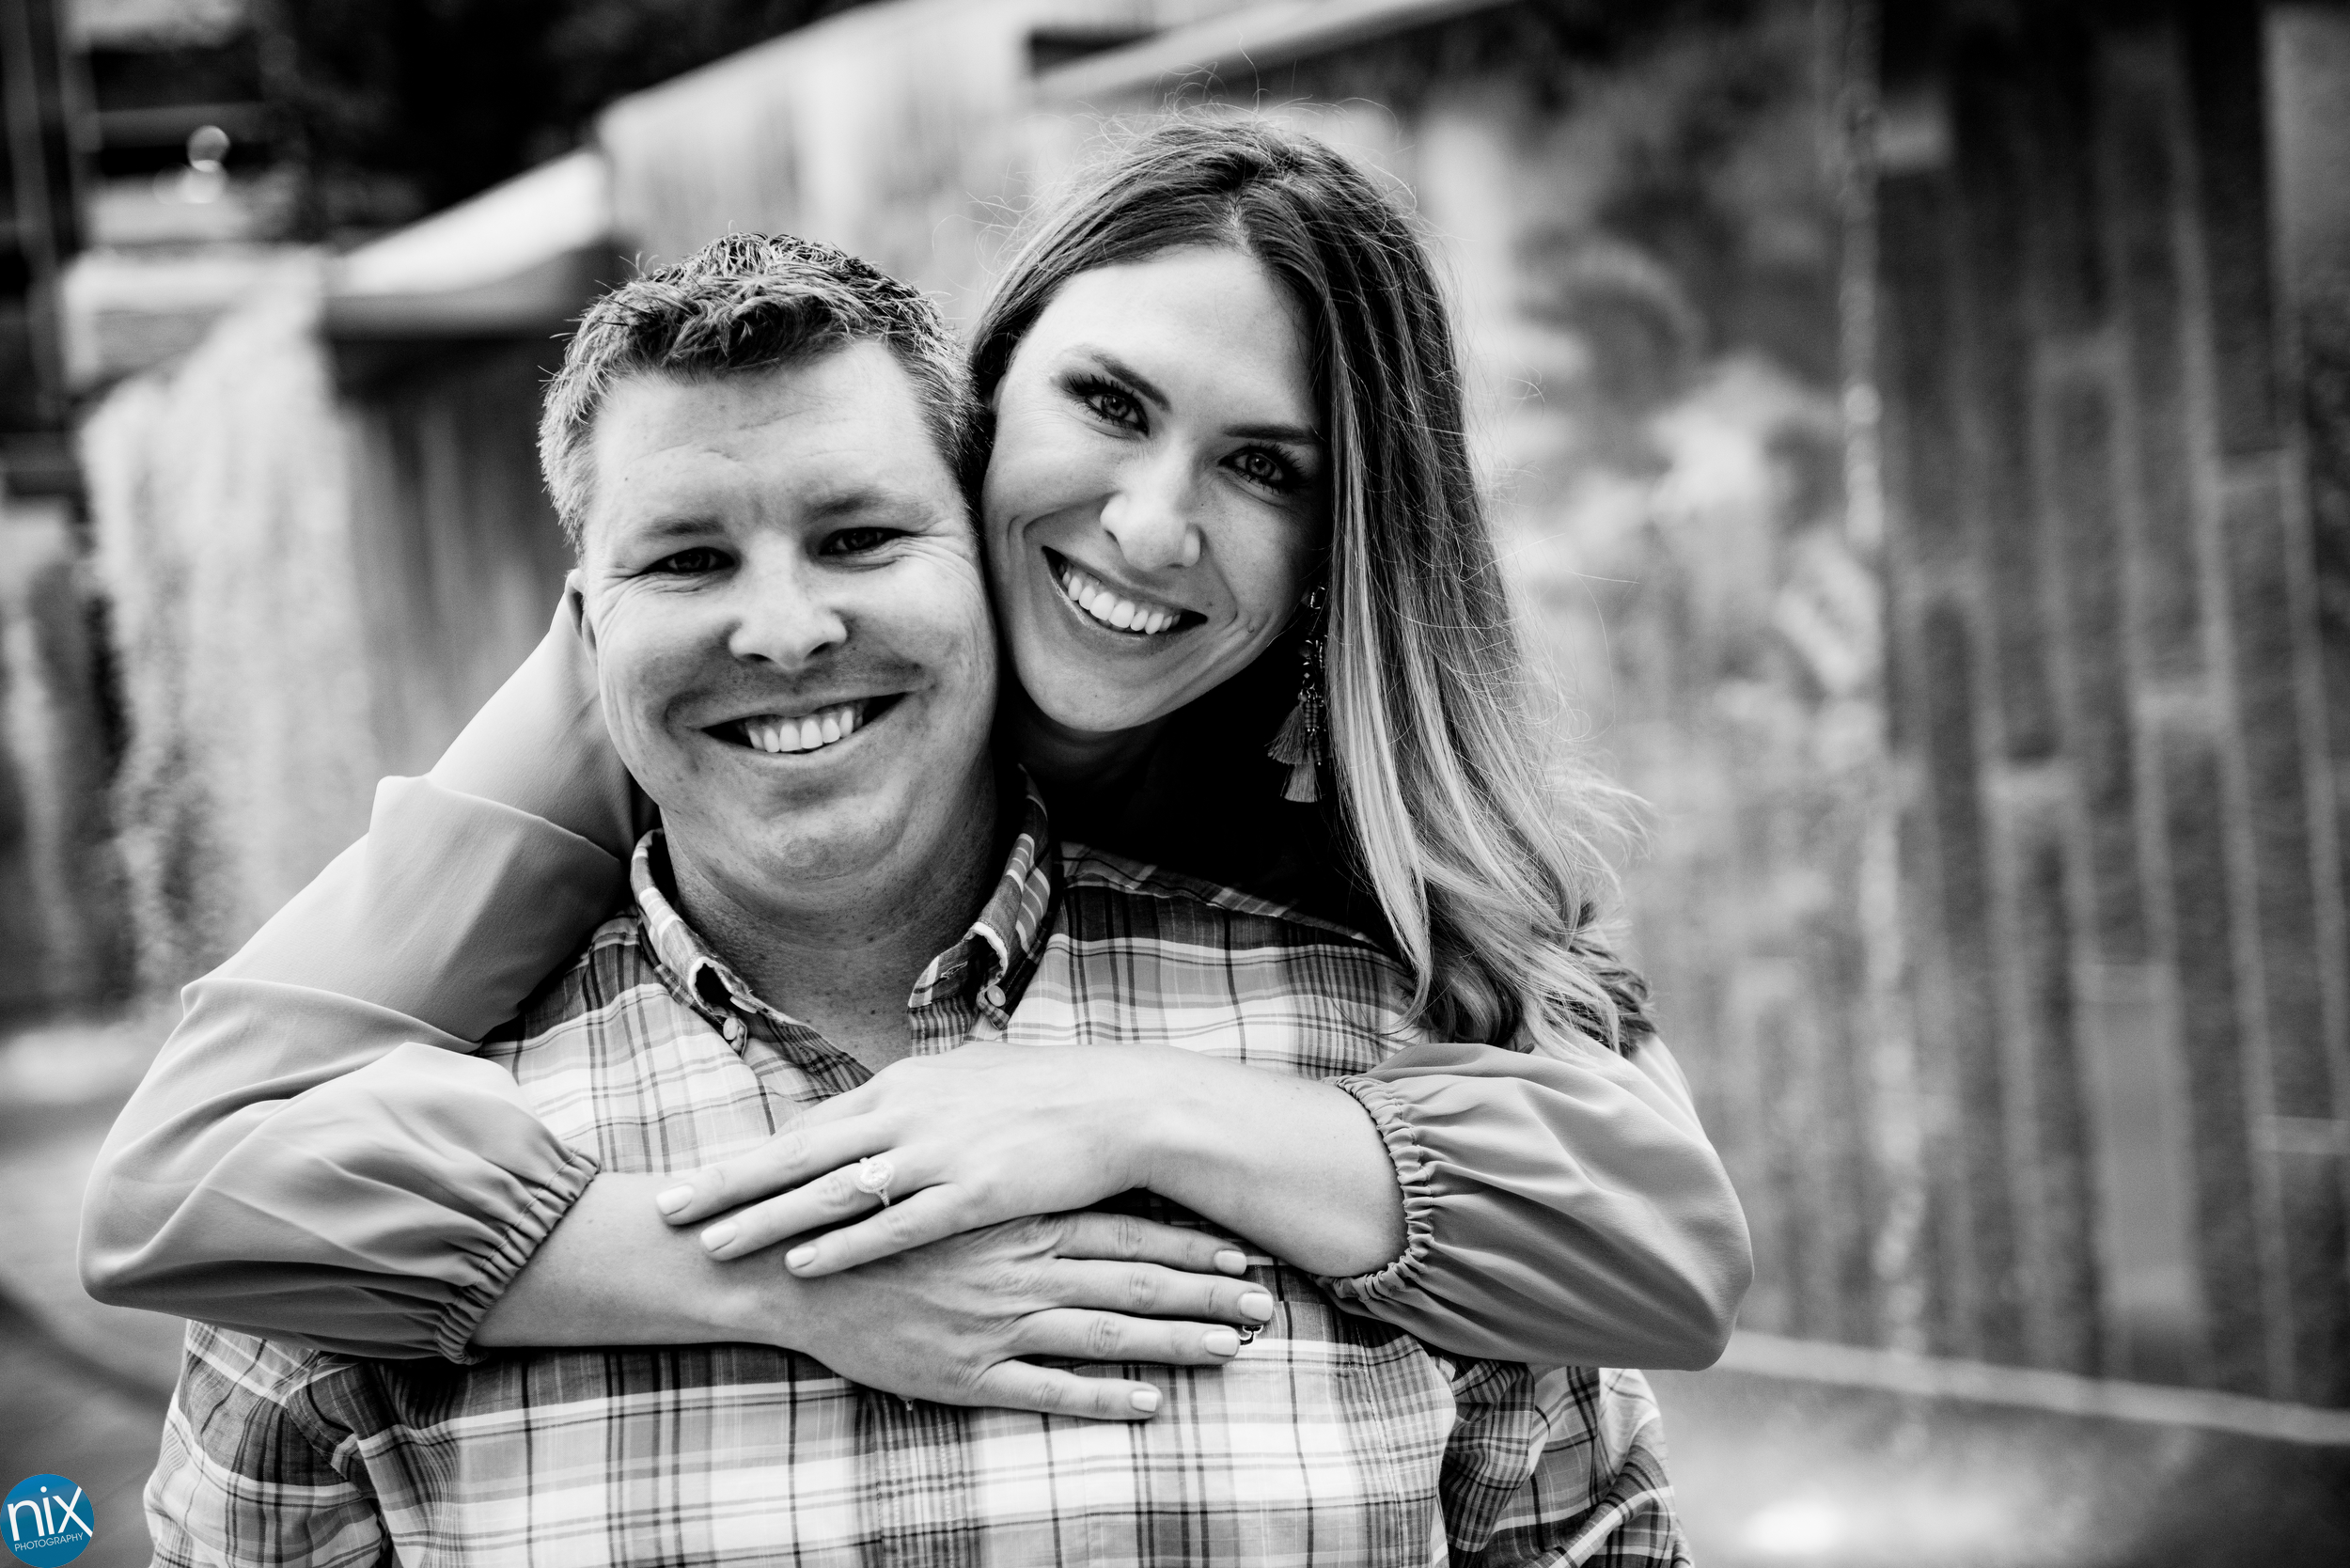 charlotte engagement at romare beardon park waterfall black and white.jpg